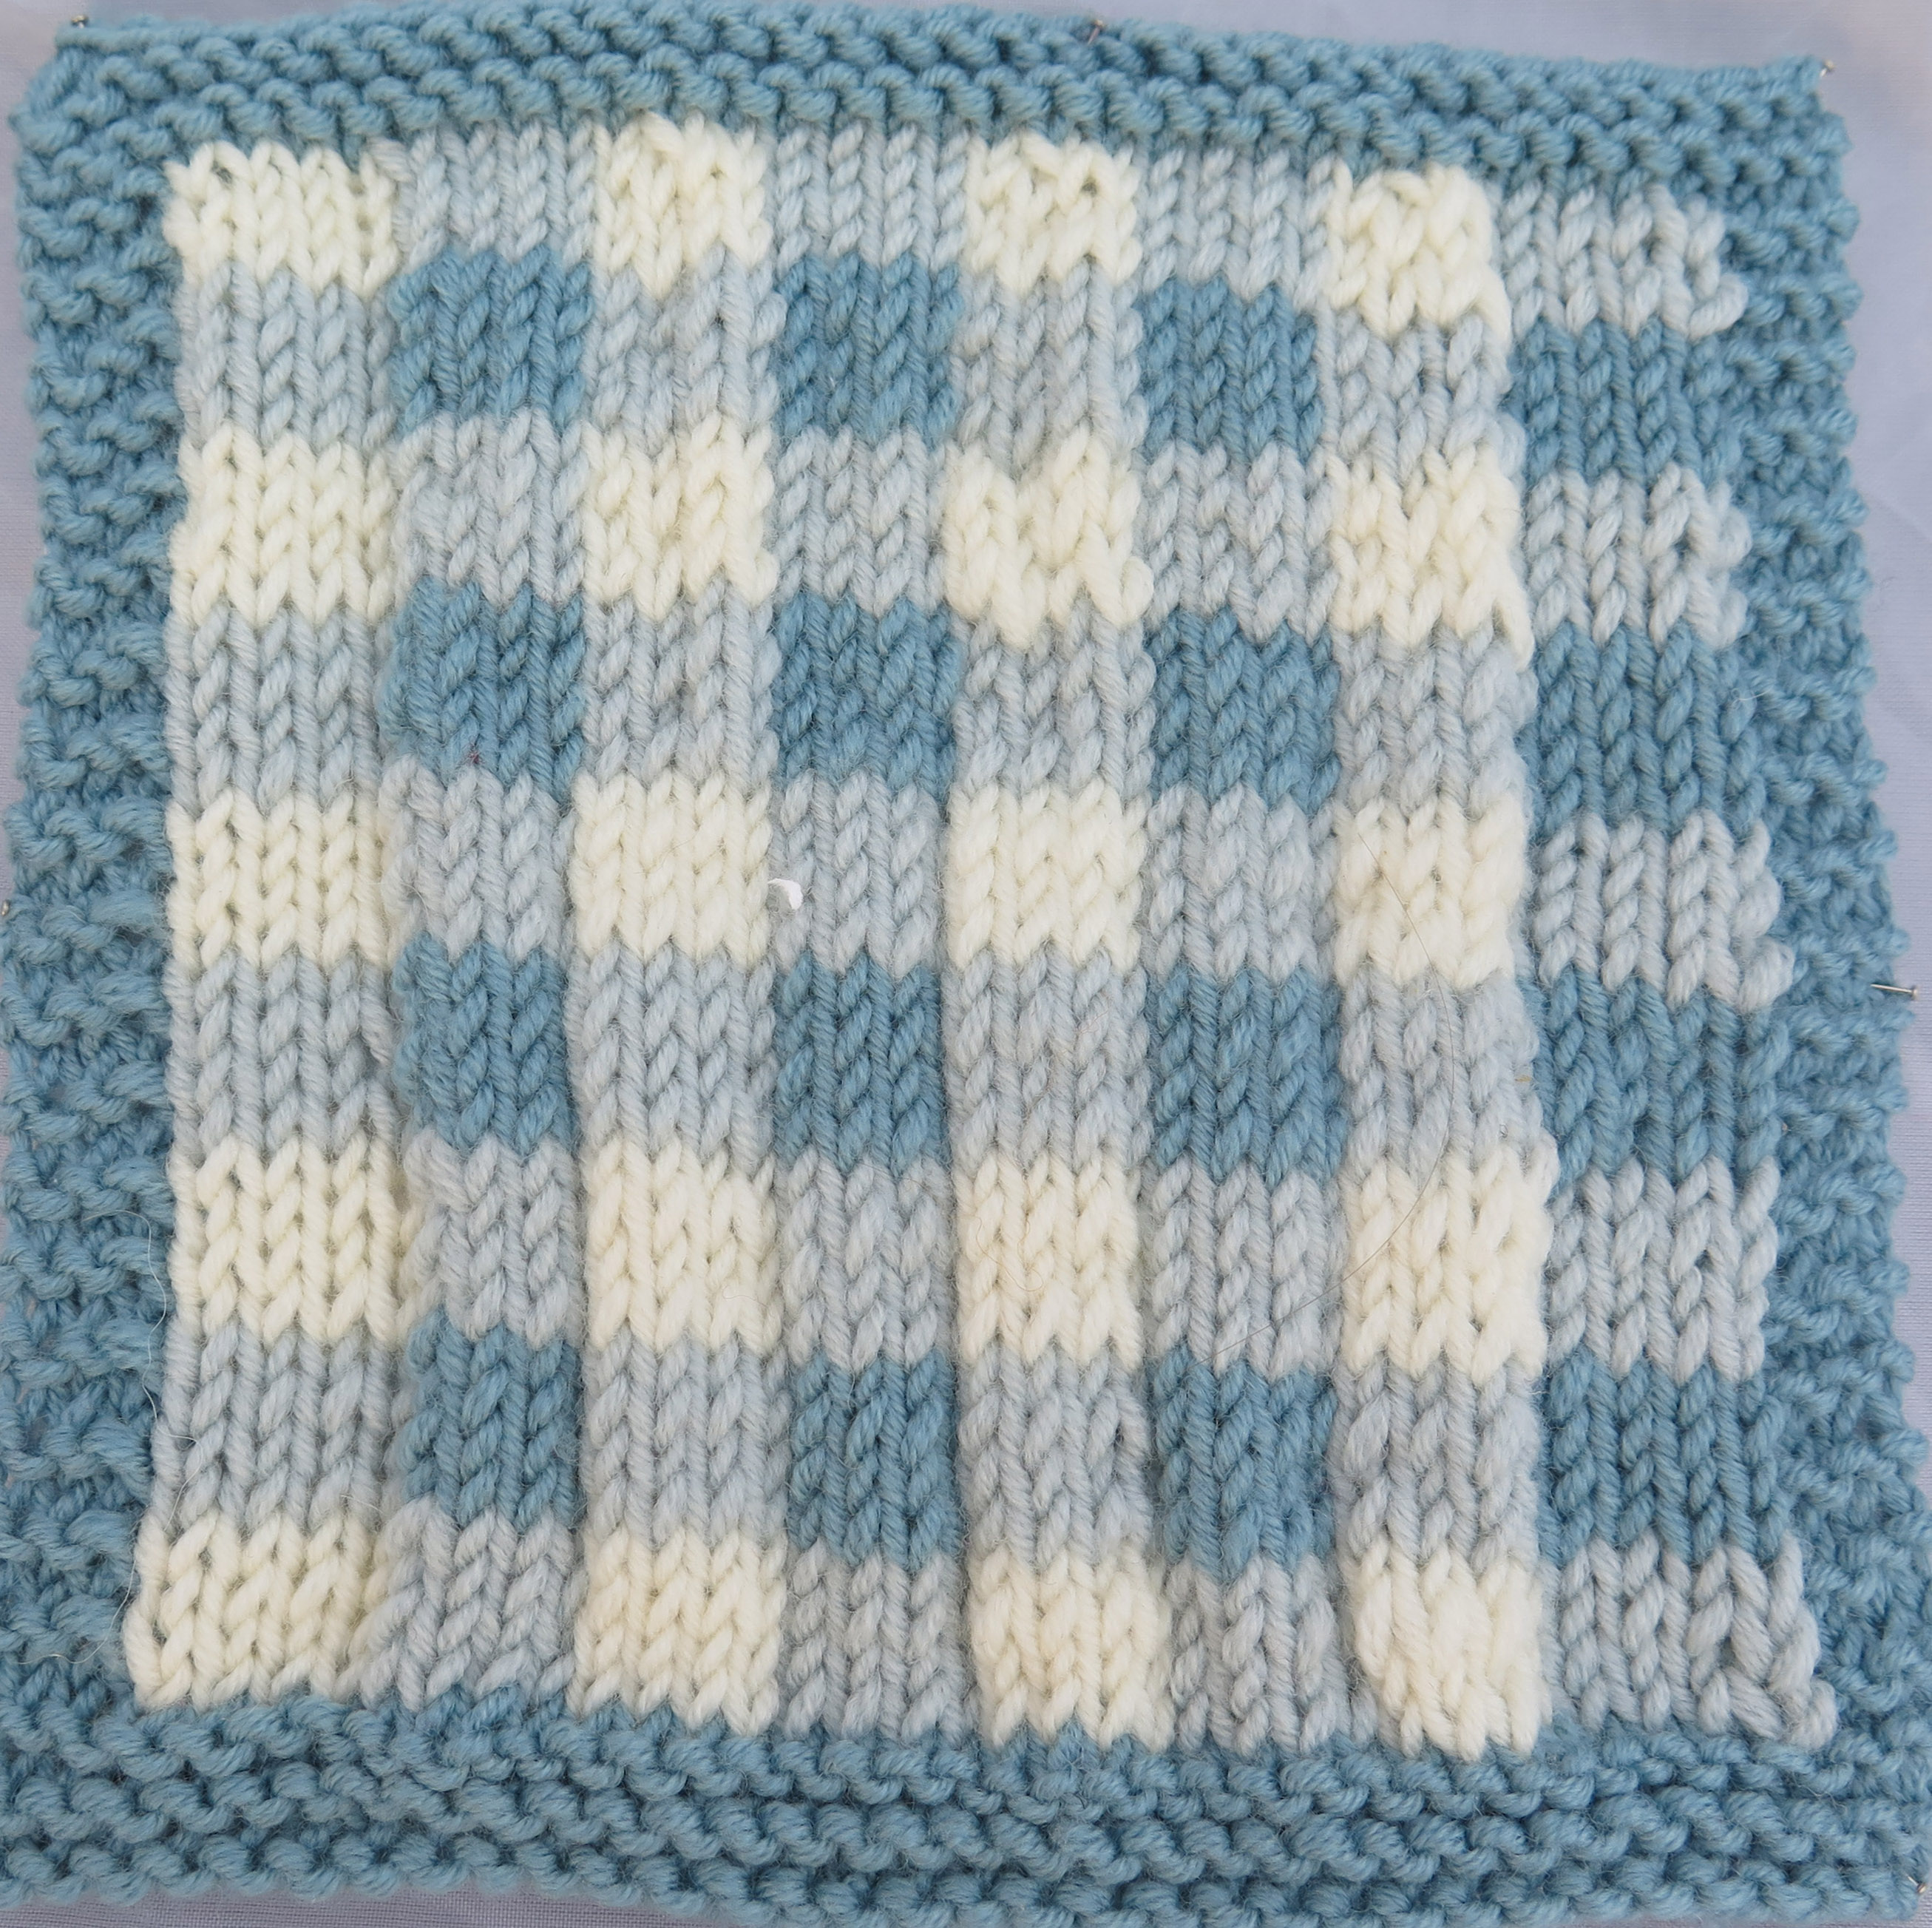 Gingham Square by Debbie Bliss - Knit For Peace